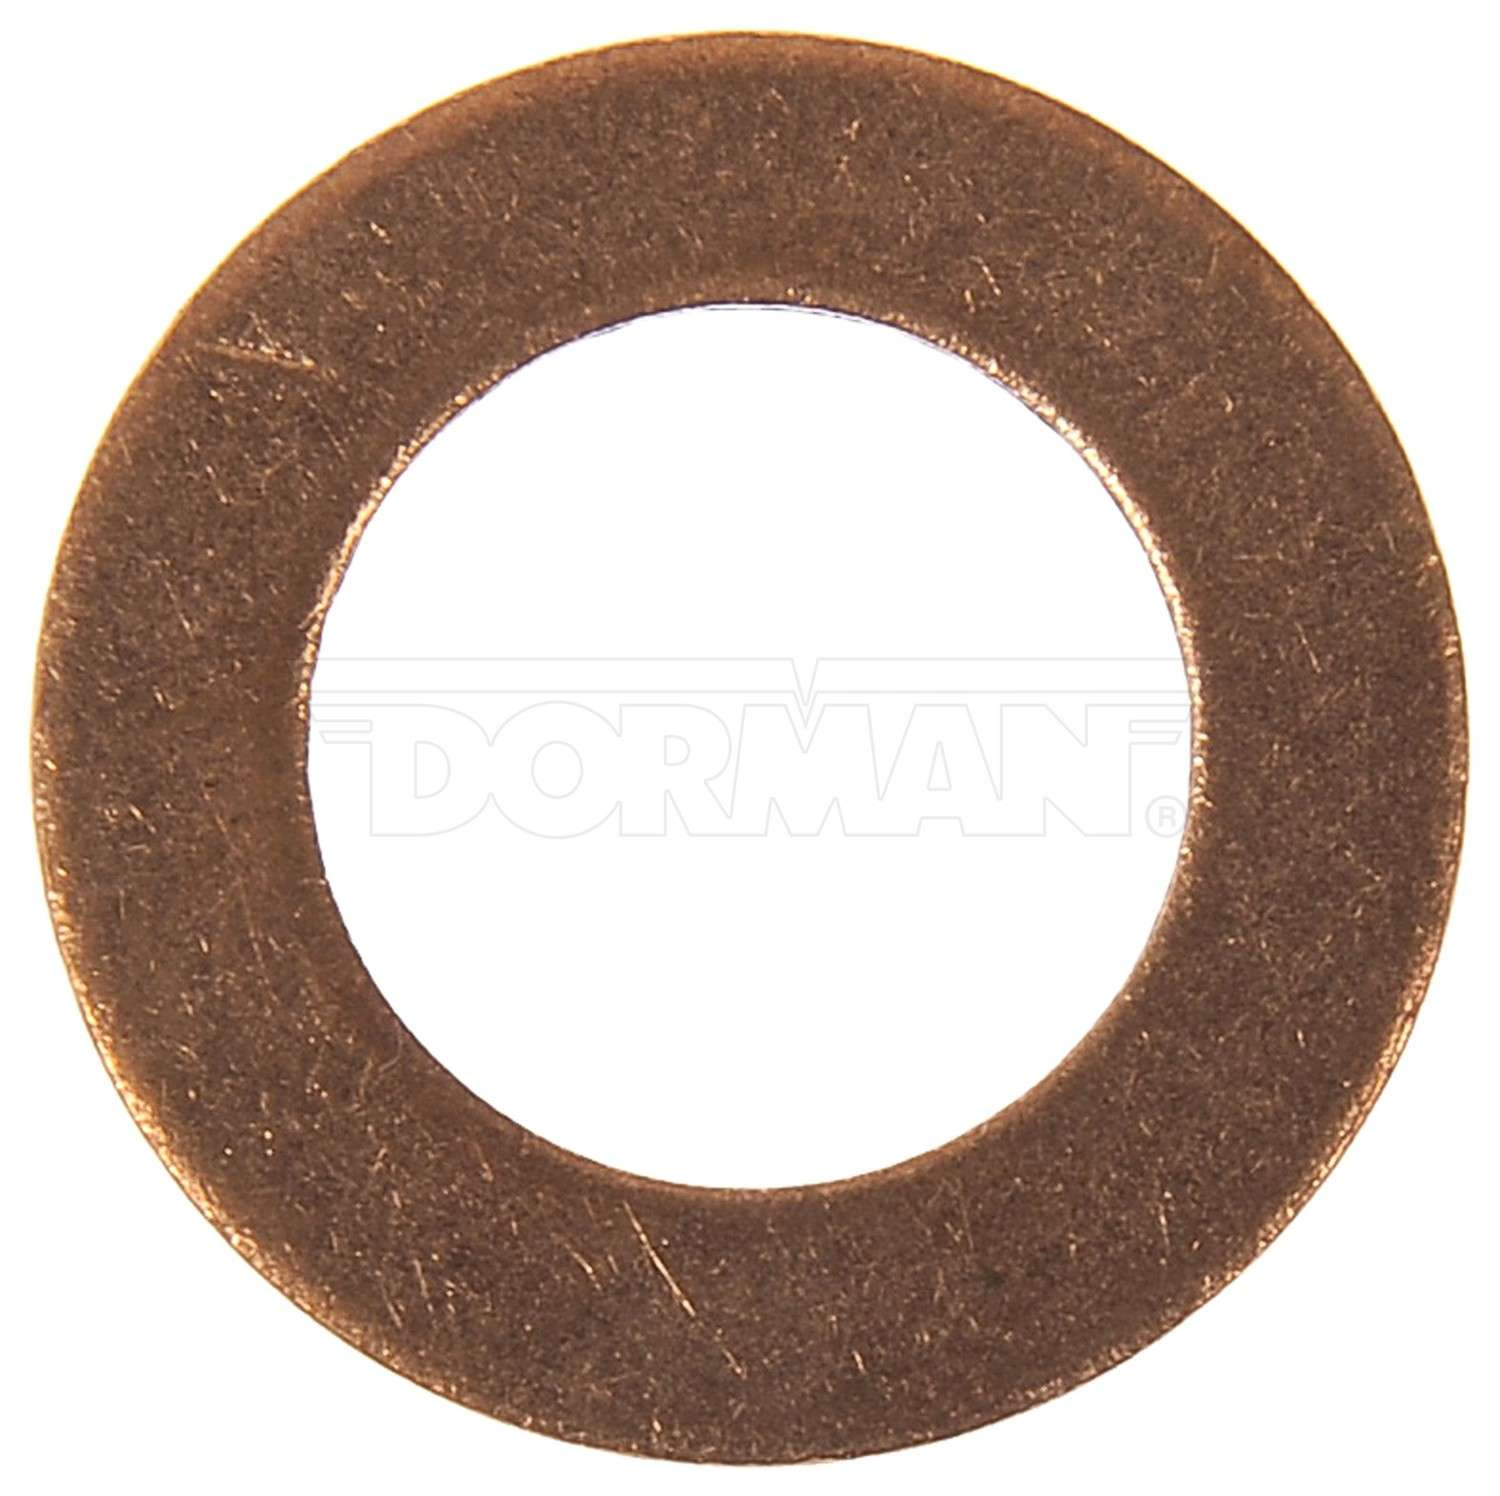 DORMAN - AUTOGRADE - Brake Hydraulic Hose To Caliper Bolt Washer - DOC 484-185